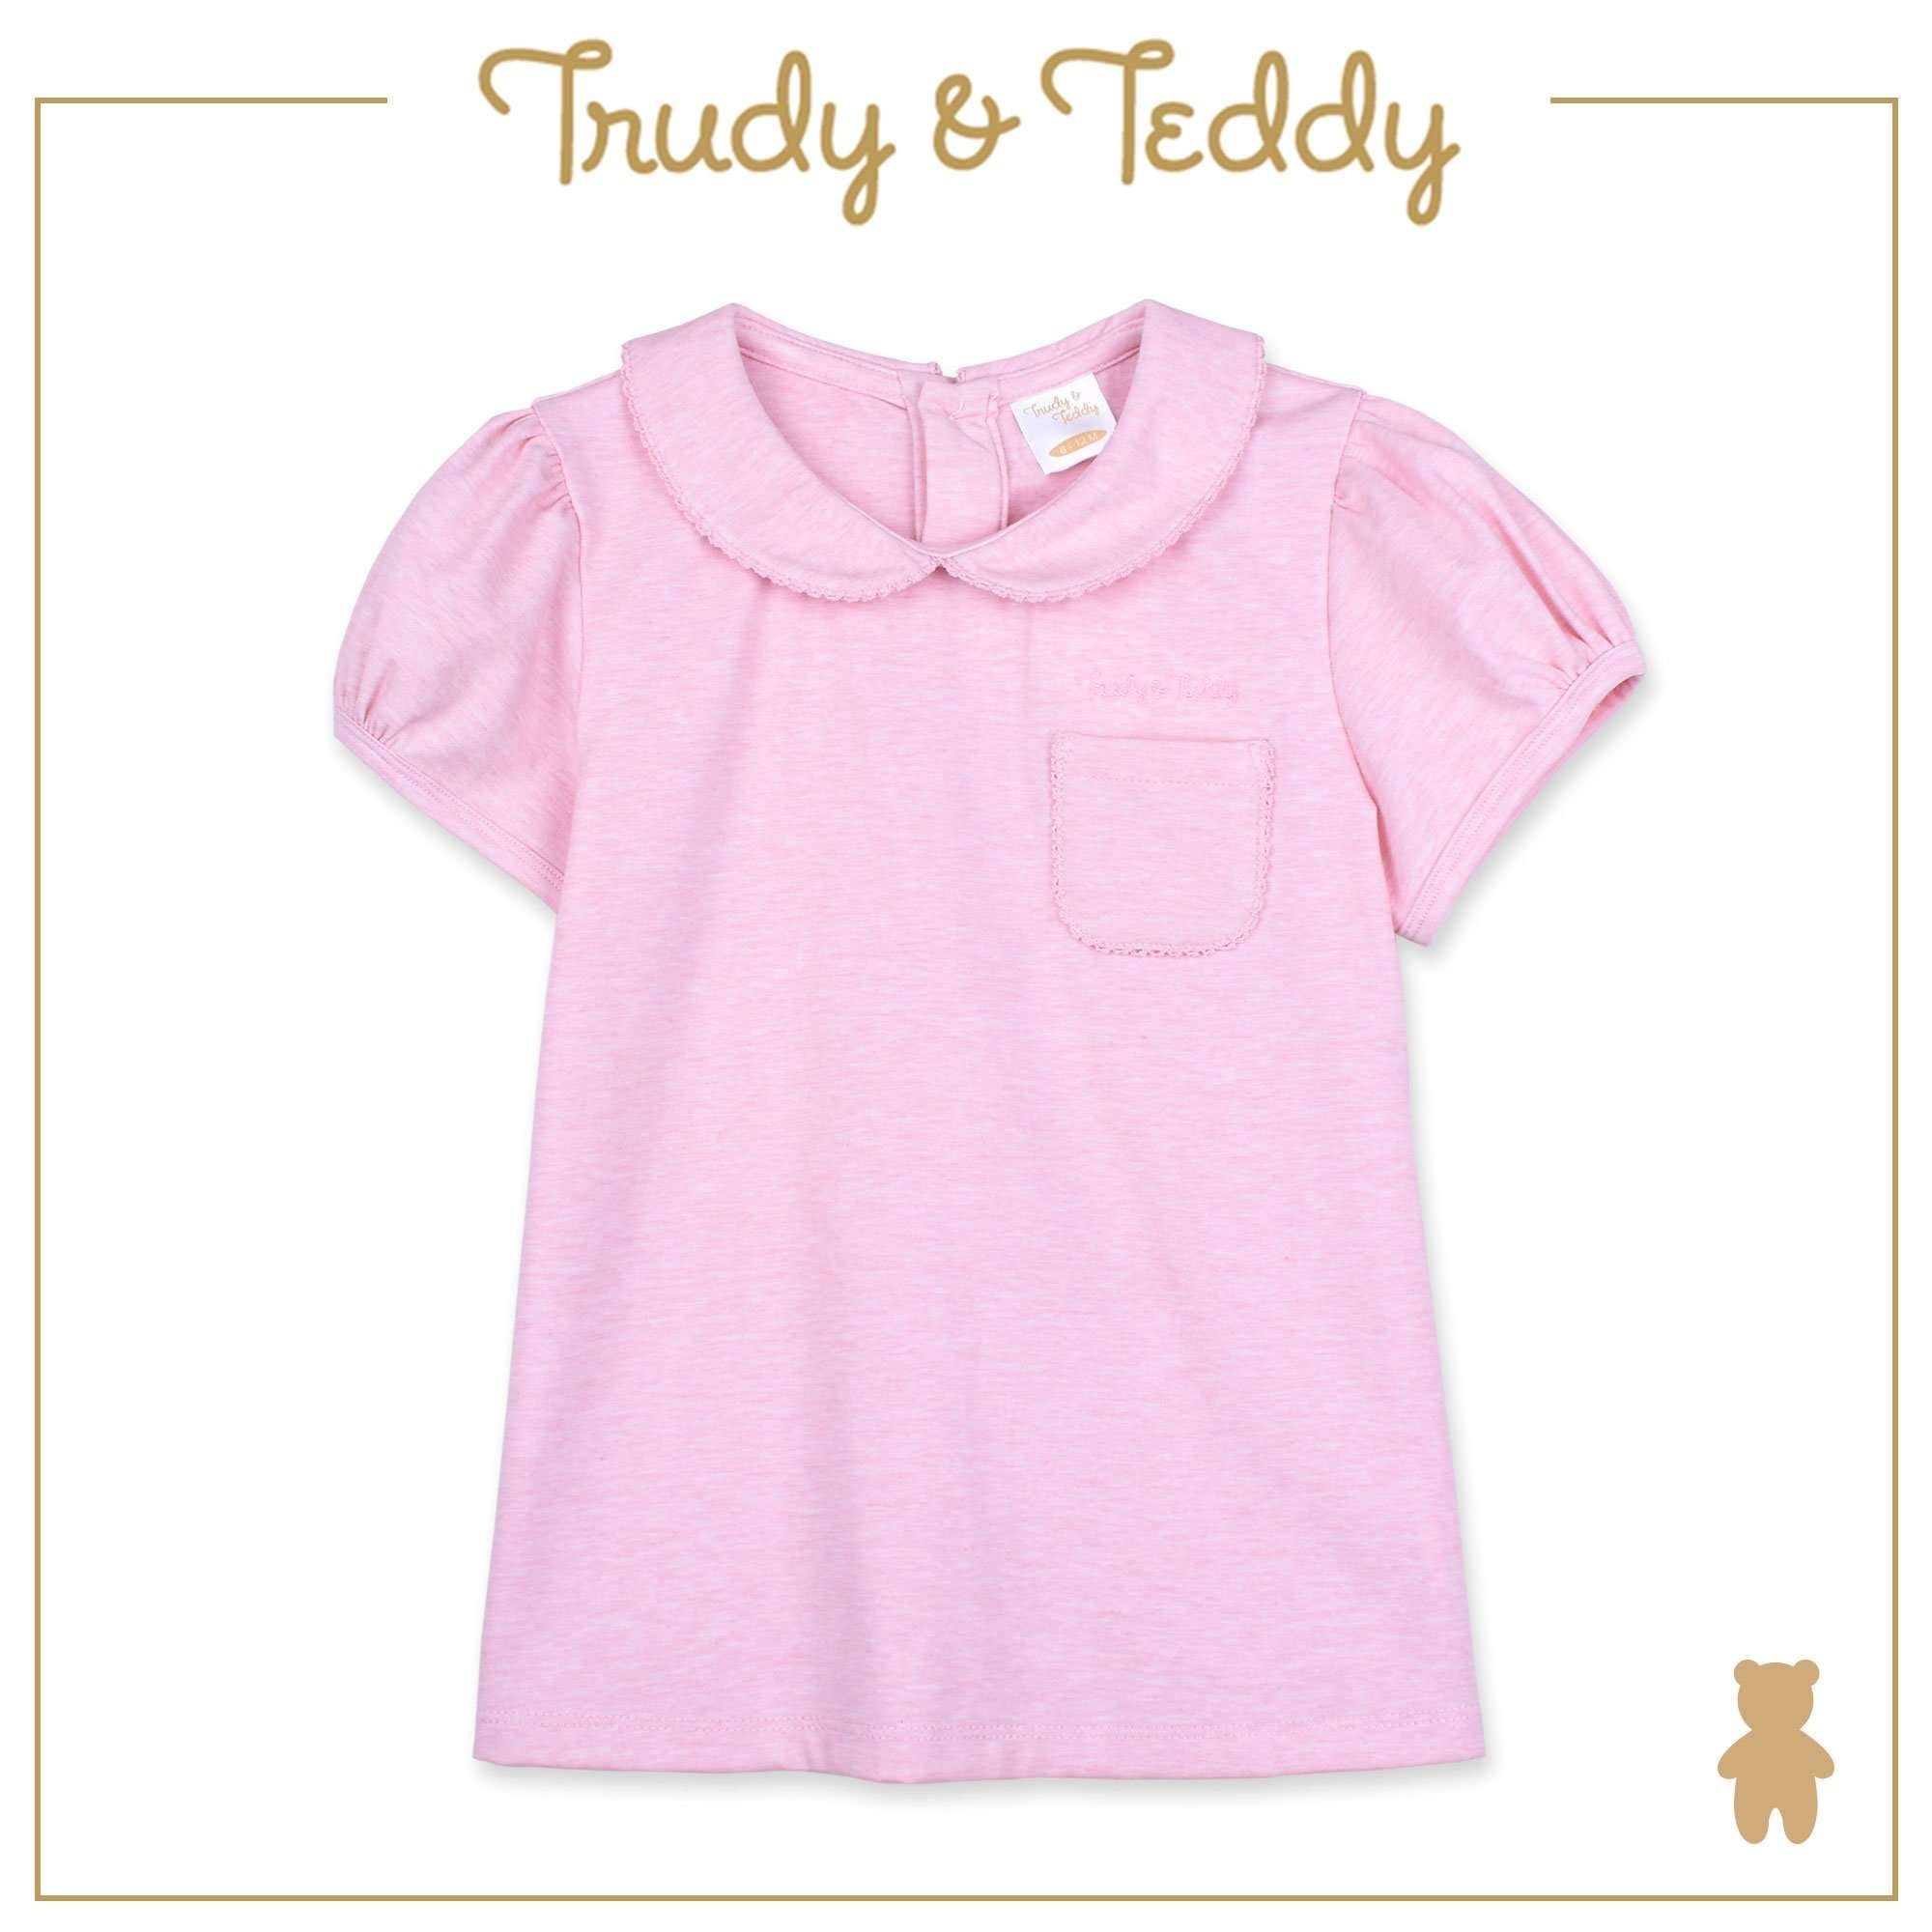 Trudy & Teddy Baby to Kid Girl Short Sleeve Blouse - Light Pink T914005-1202-P1 : Buy Trudy & Teddy online at CMG.MY